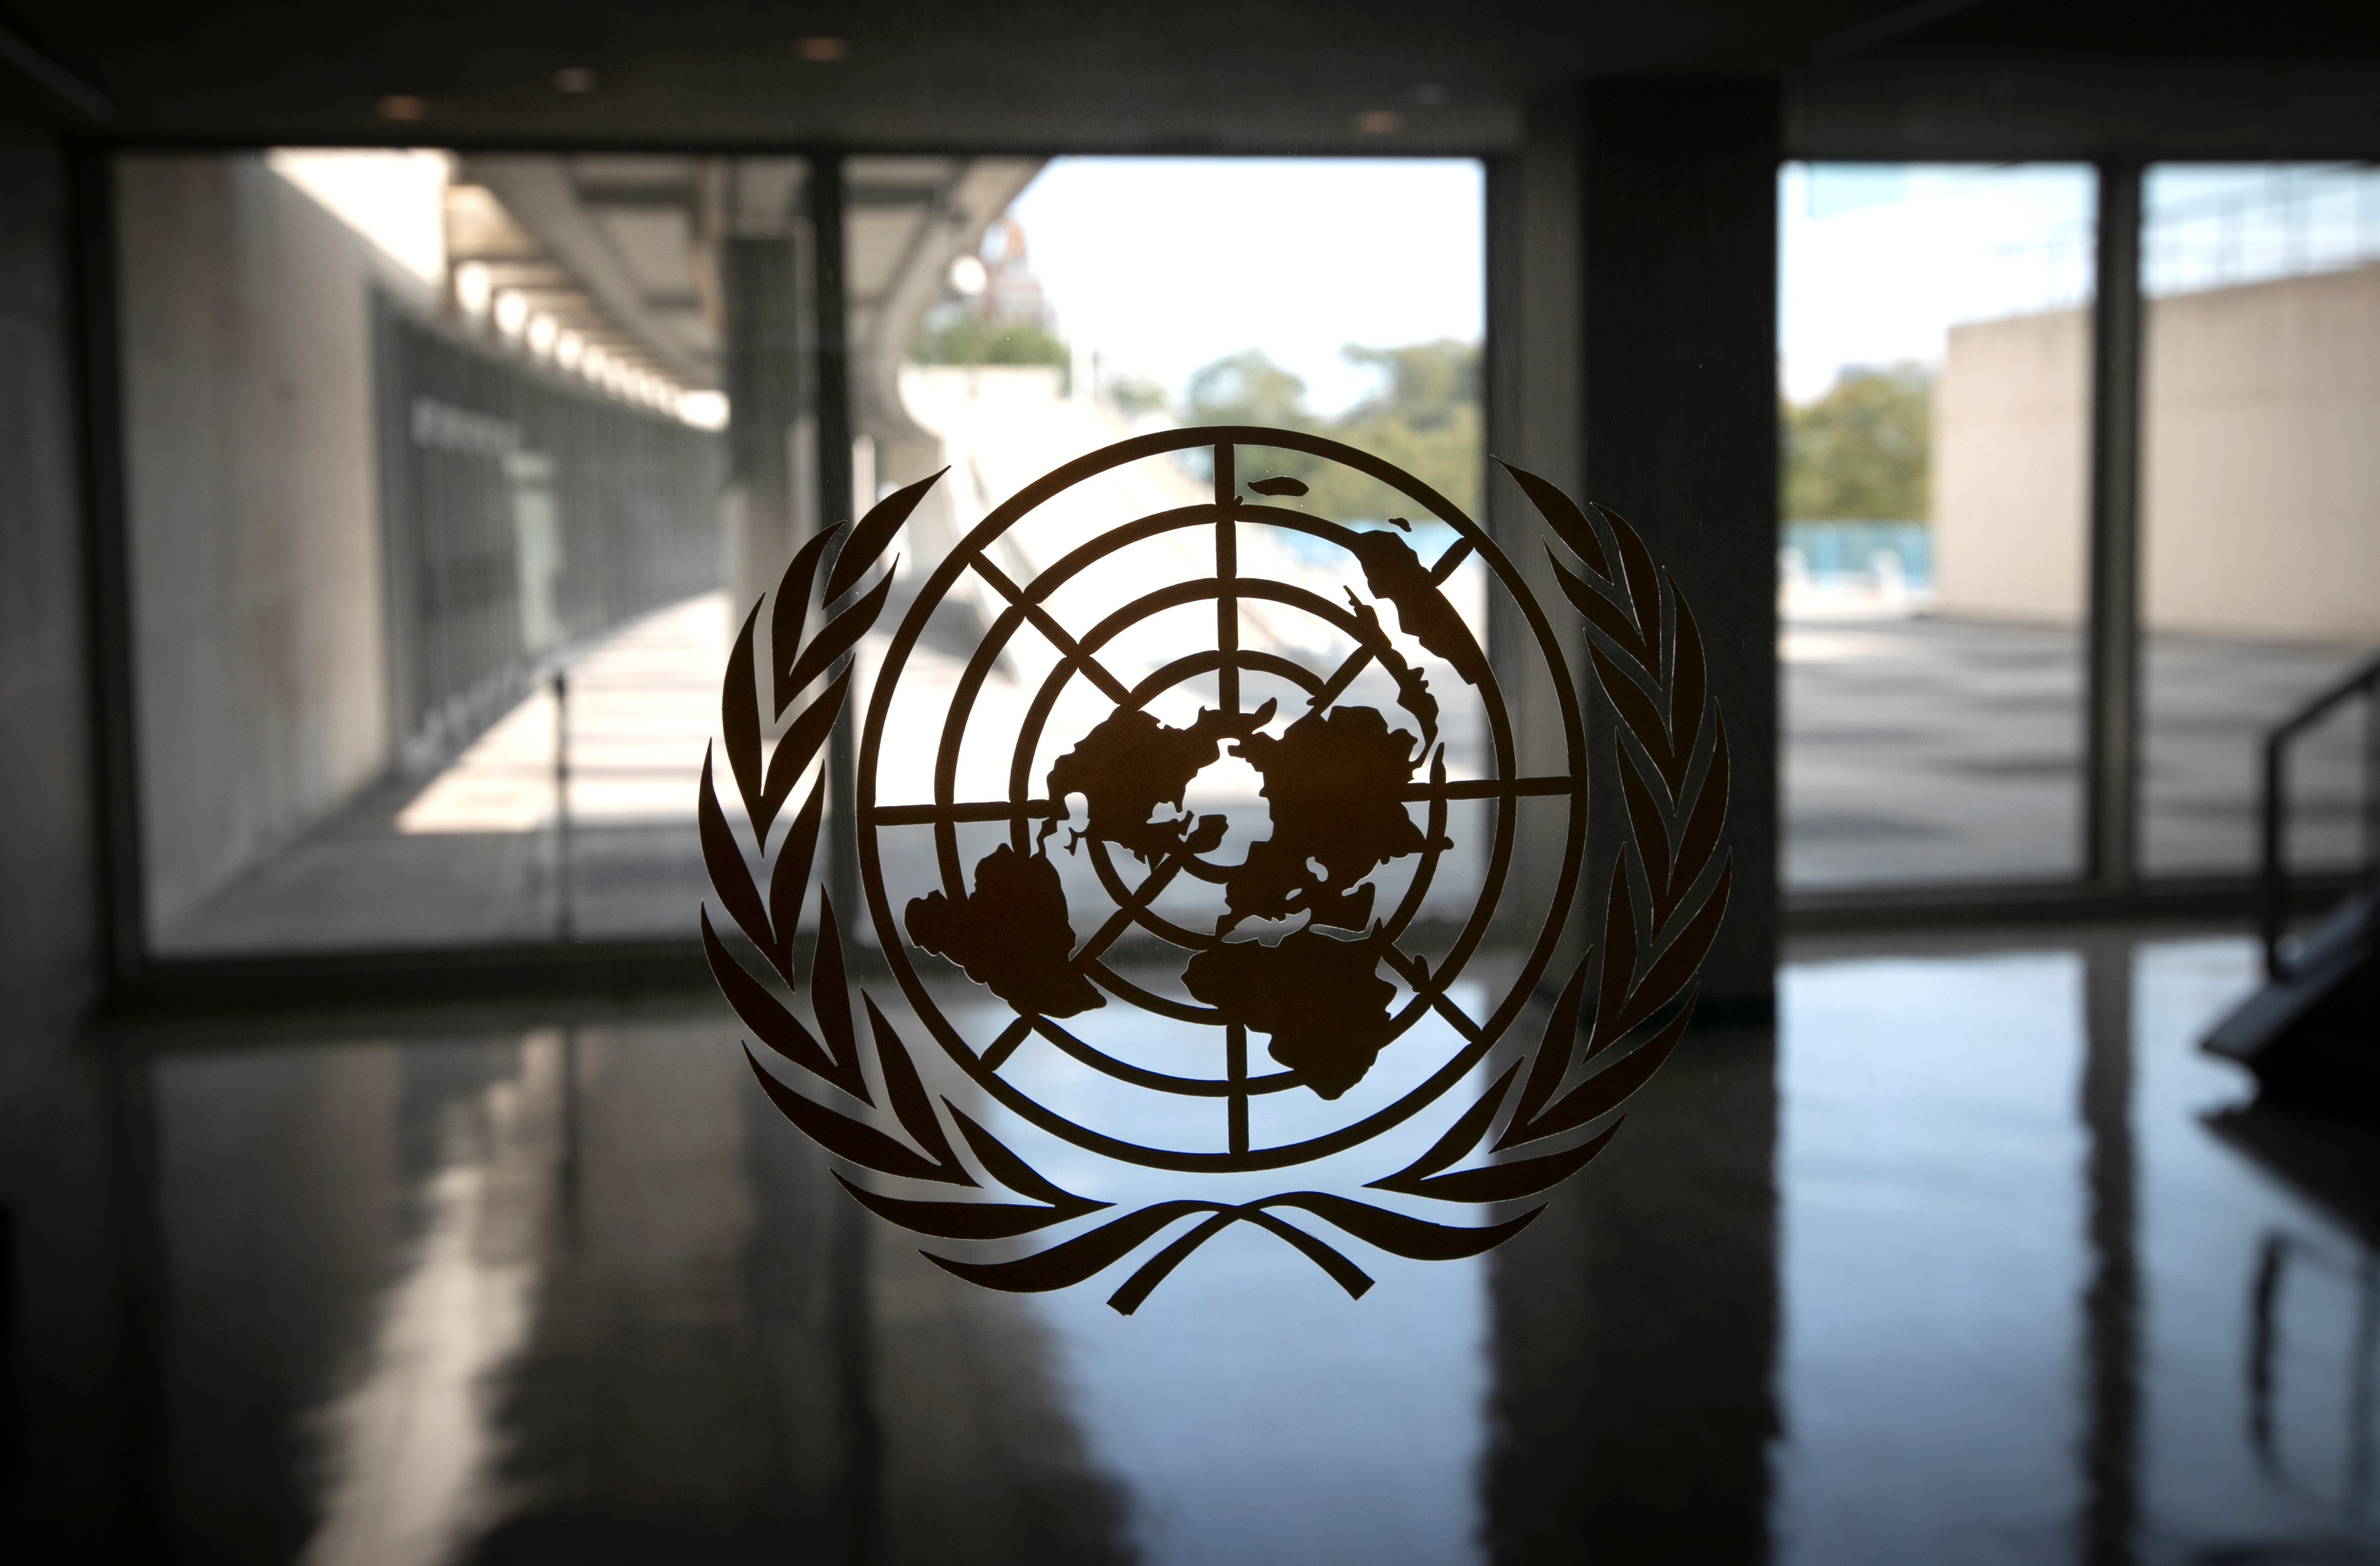 It is now time to focus on multilateral order